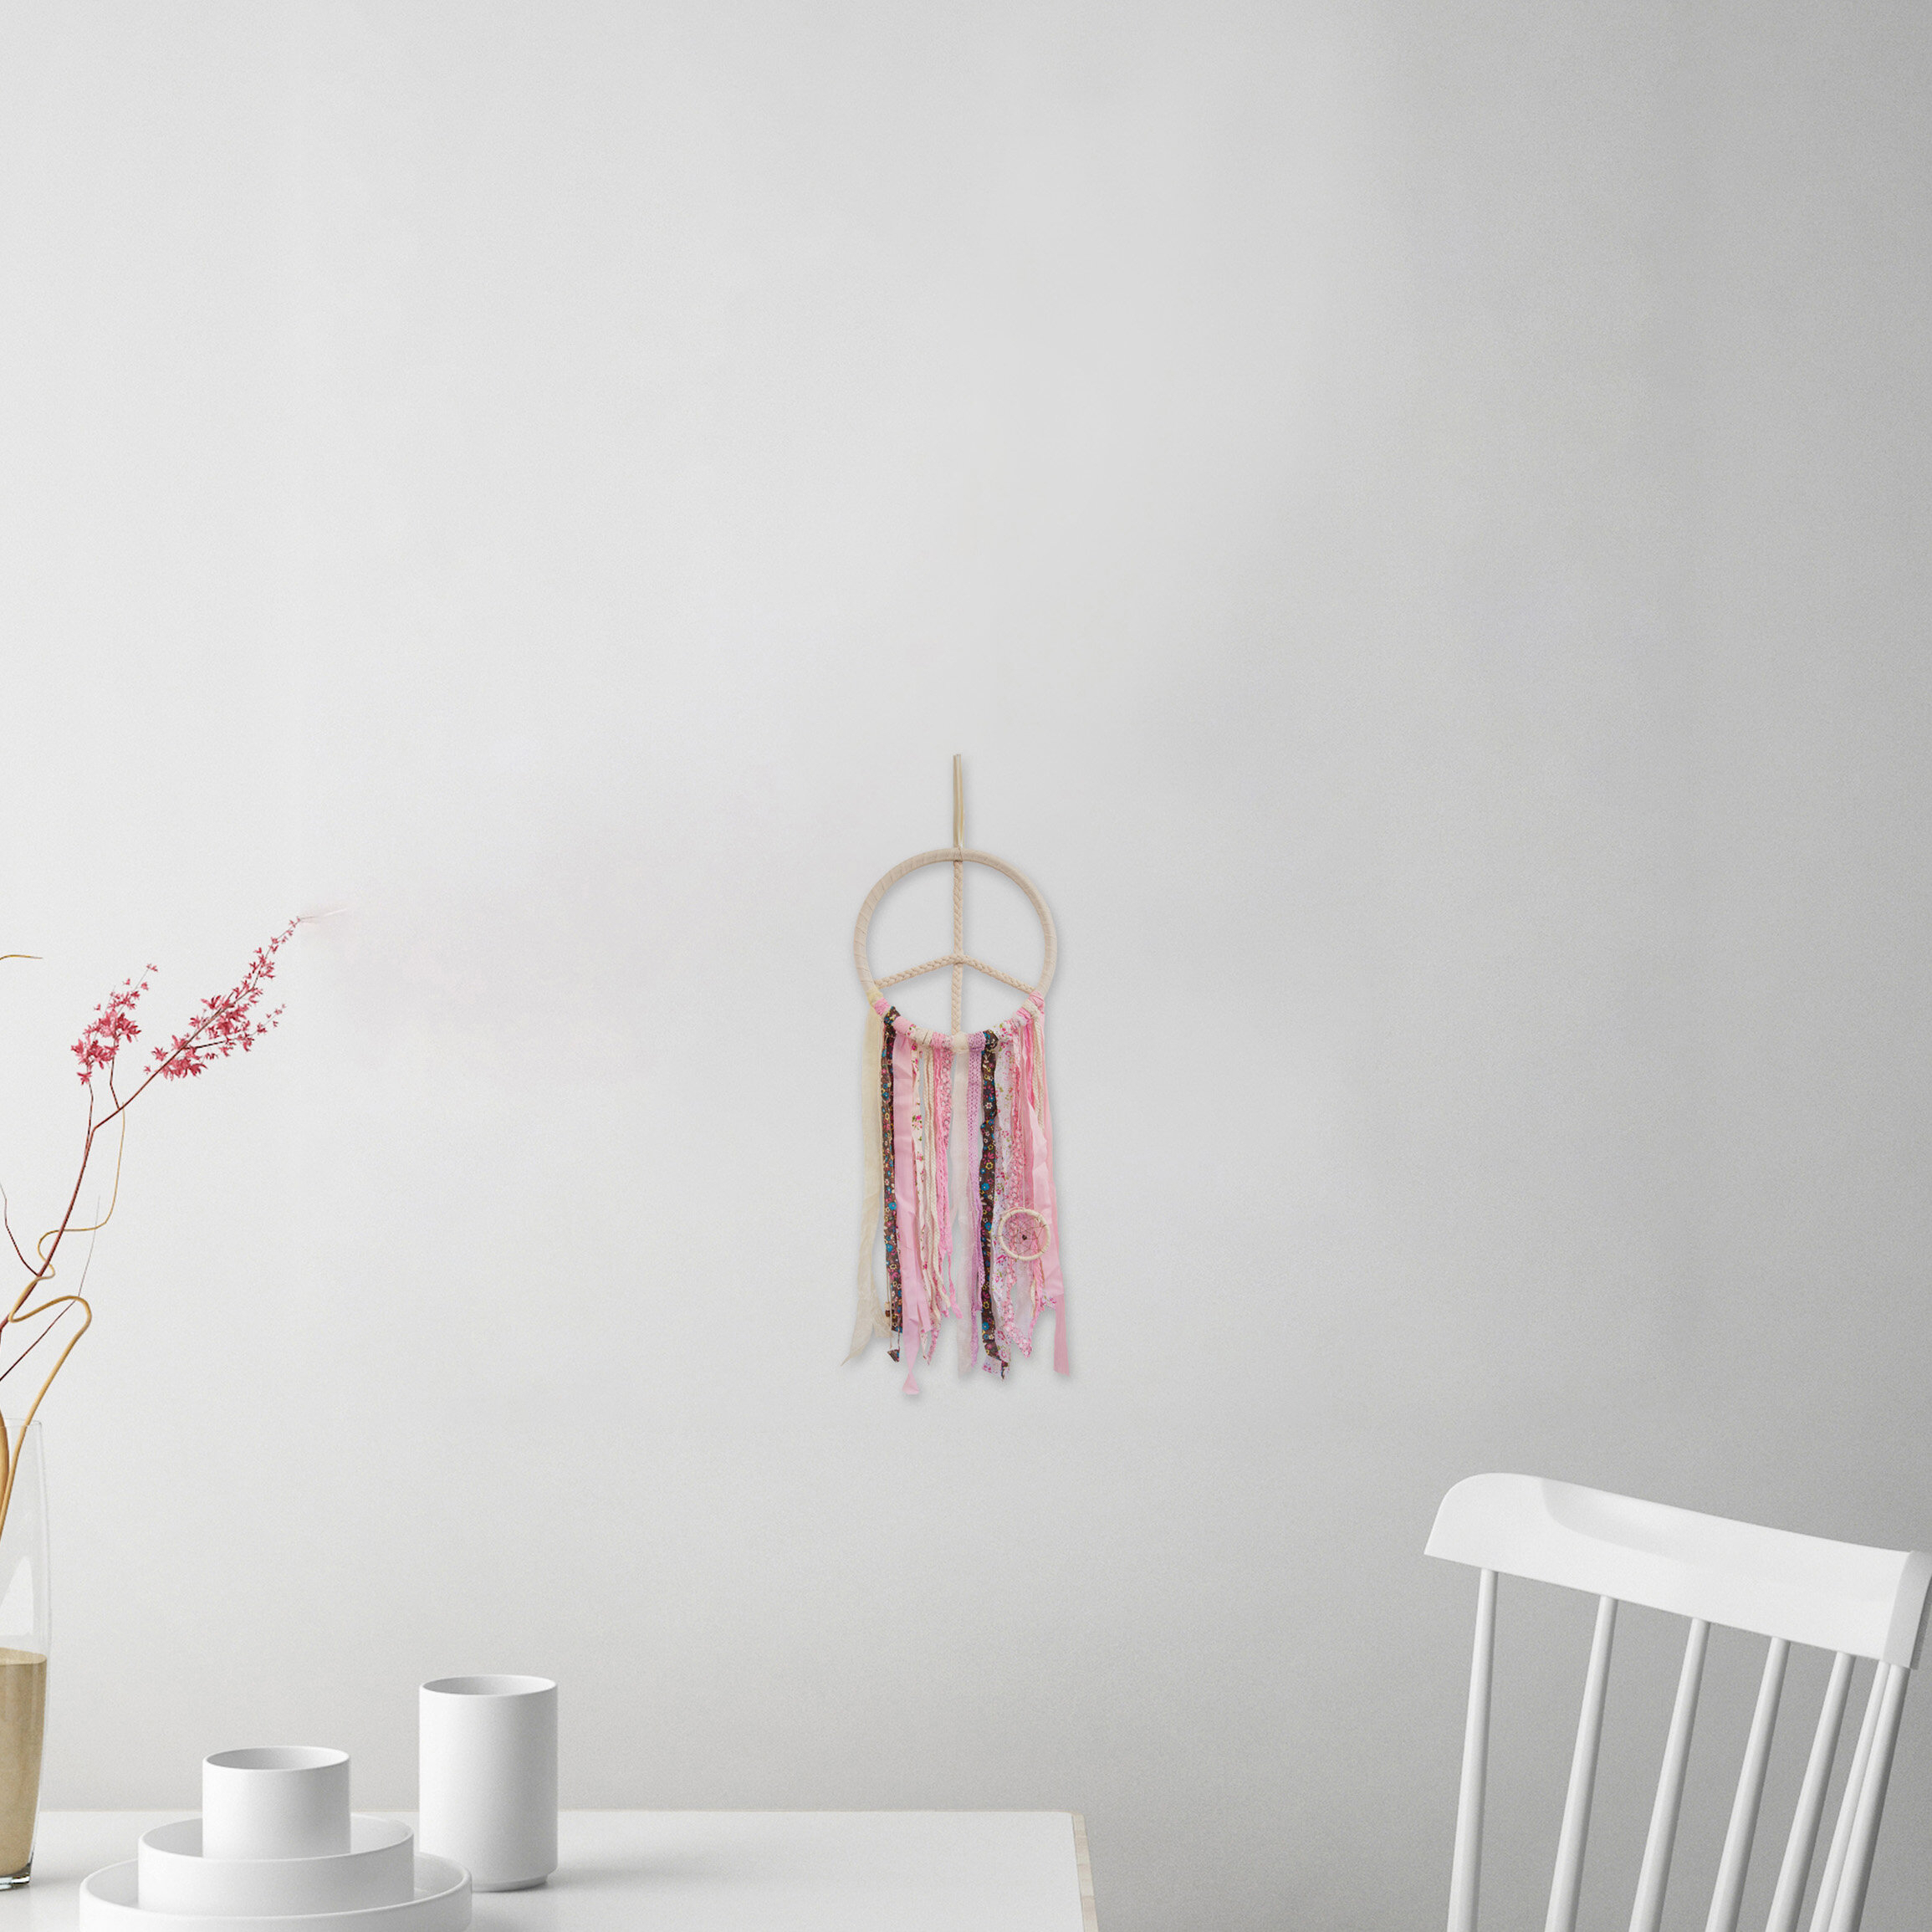 Shabby Elegance Dream Catcher Wall Hanging Within Most Current Blended Fabric Hohl Wall Hangings With Rod (View 8 of 20)